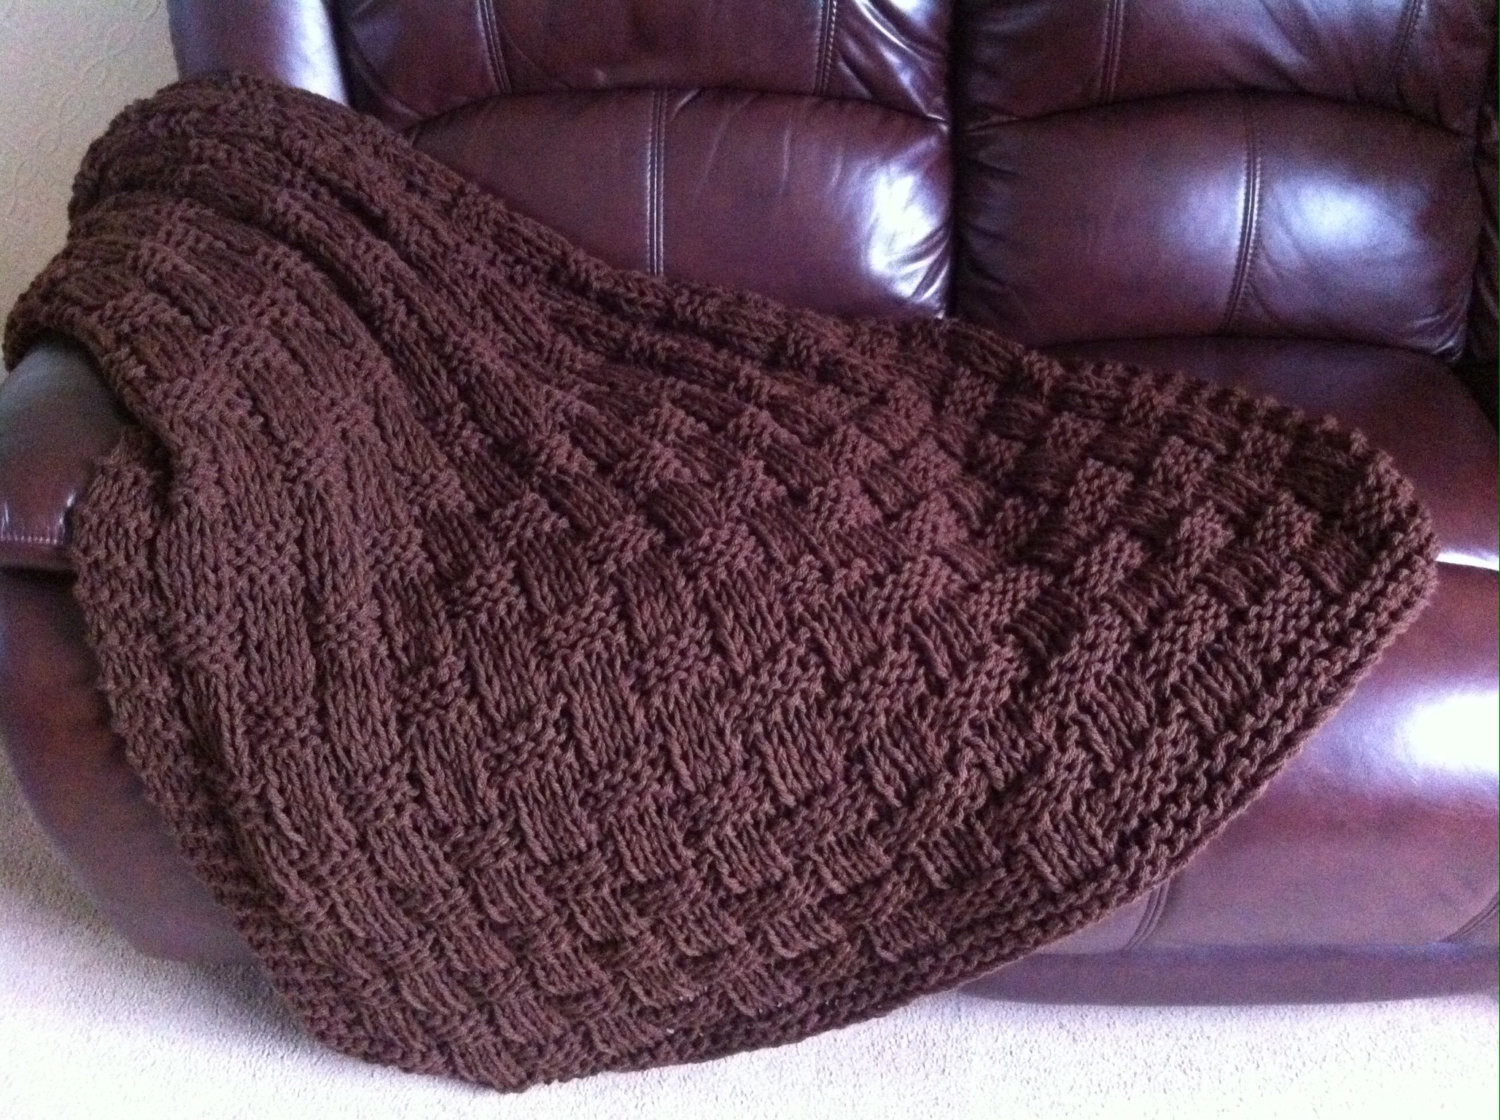 Chunky Knit Throw Luxury Chunky Basket Weave Hand Knit Blanket Throw Chocolate Of Superb 50 Pics Chunky Knit Throw